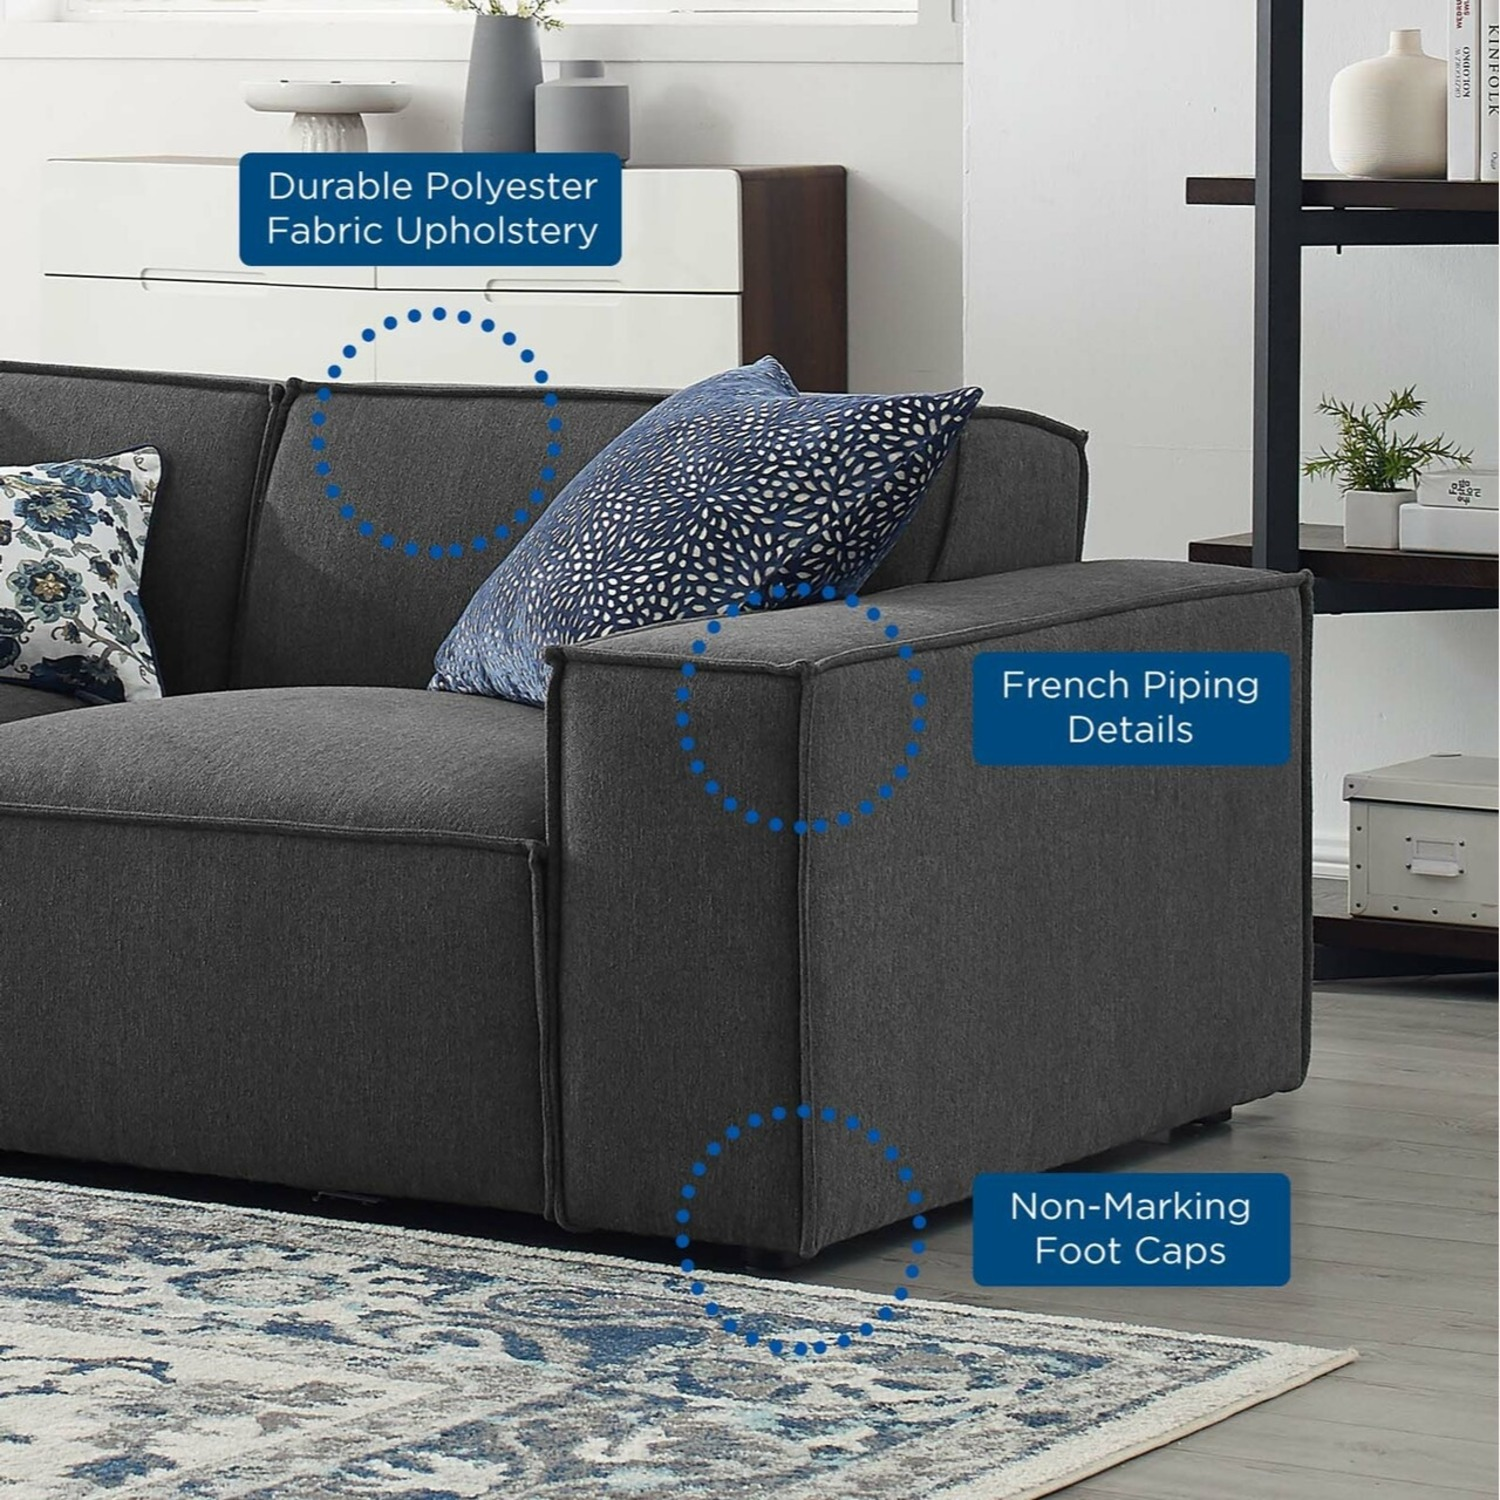 4-Piece Sectional Sofa In Charcoal Fabric Finish - image-9